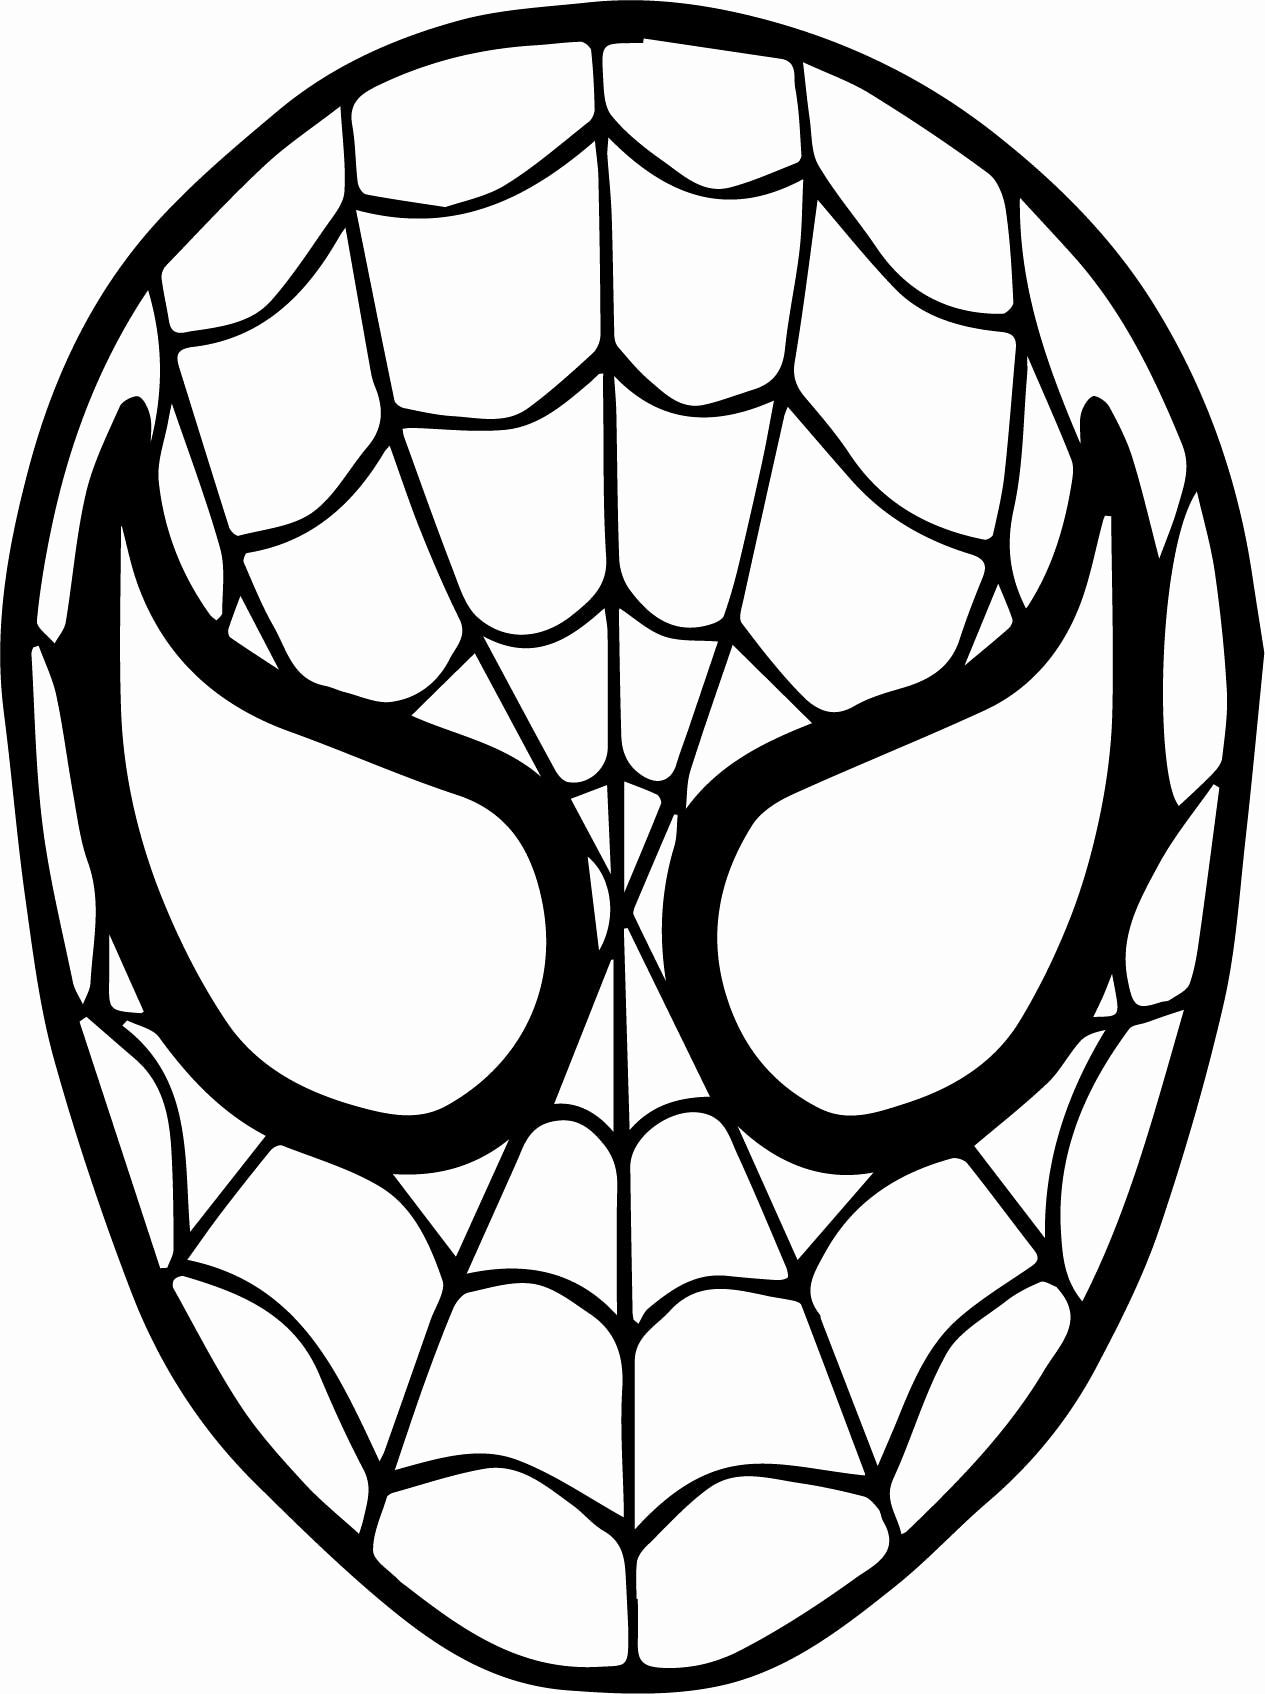 Spiderman Coloring Pages Download | Free Coloring Sheets